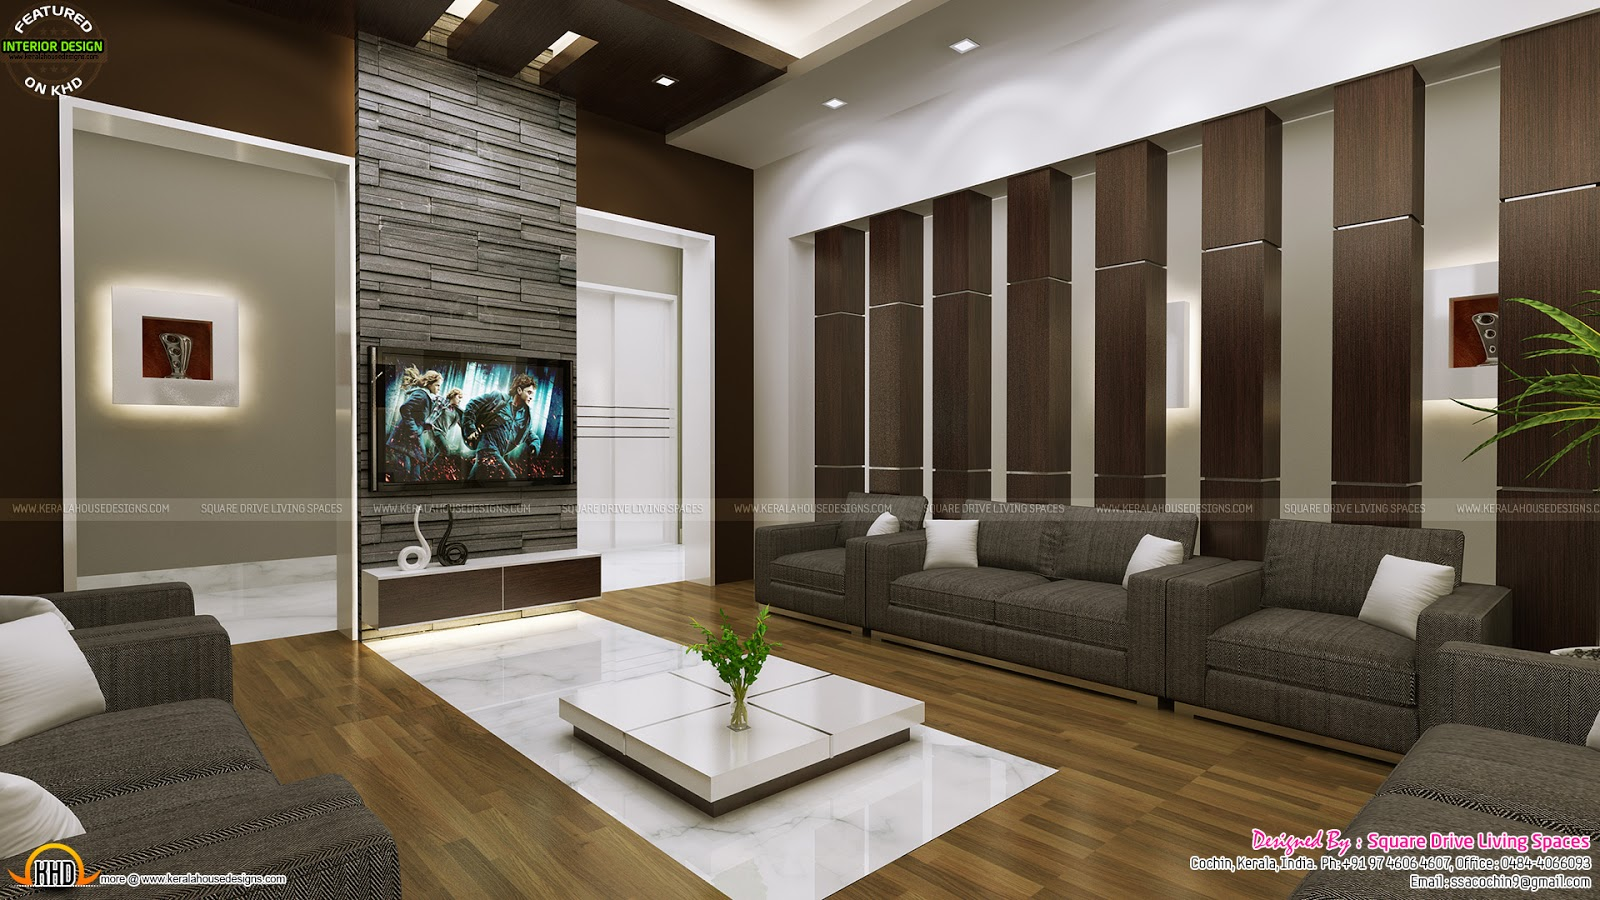 Attractive home interior ideas - Kerala home design and ...